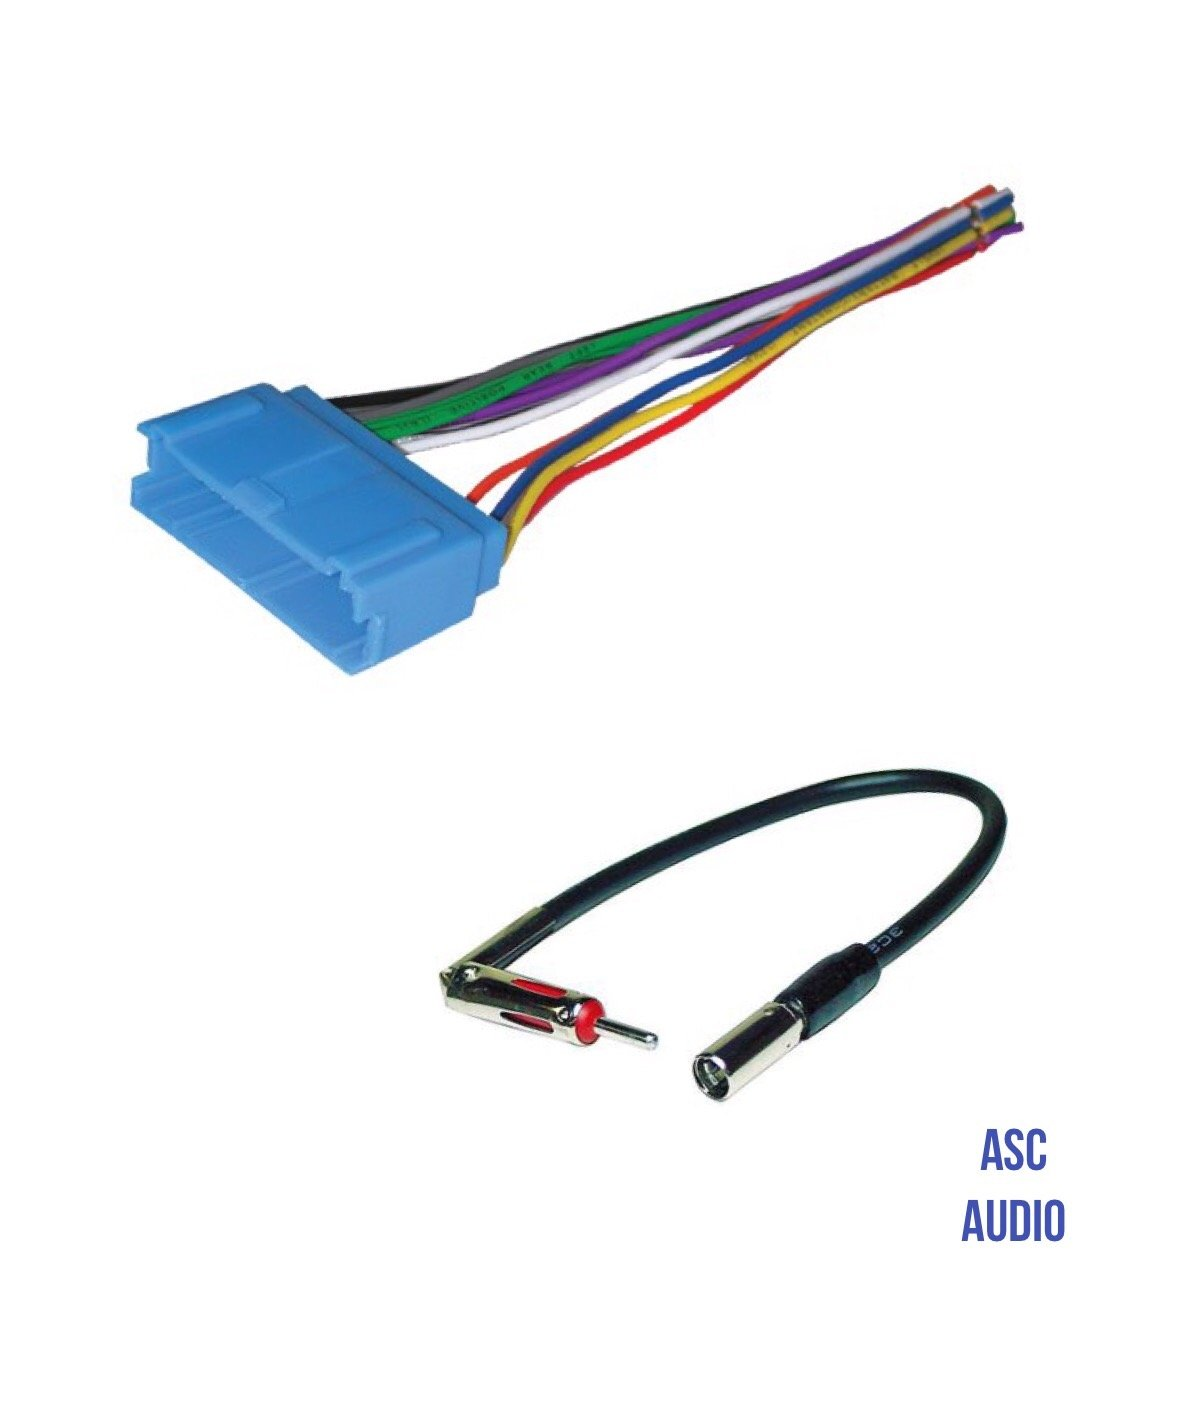 Amazon.com: ASC Audio Car Stereo Radio Wire Harness and Antenna Adapter to  Aftermarket Radio for some Buick Cadillac Oldsmobile - No Factory Bose/Amp-  ...